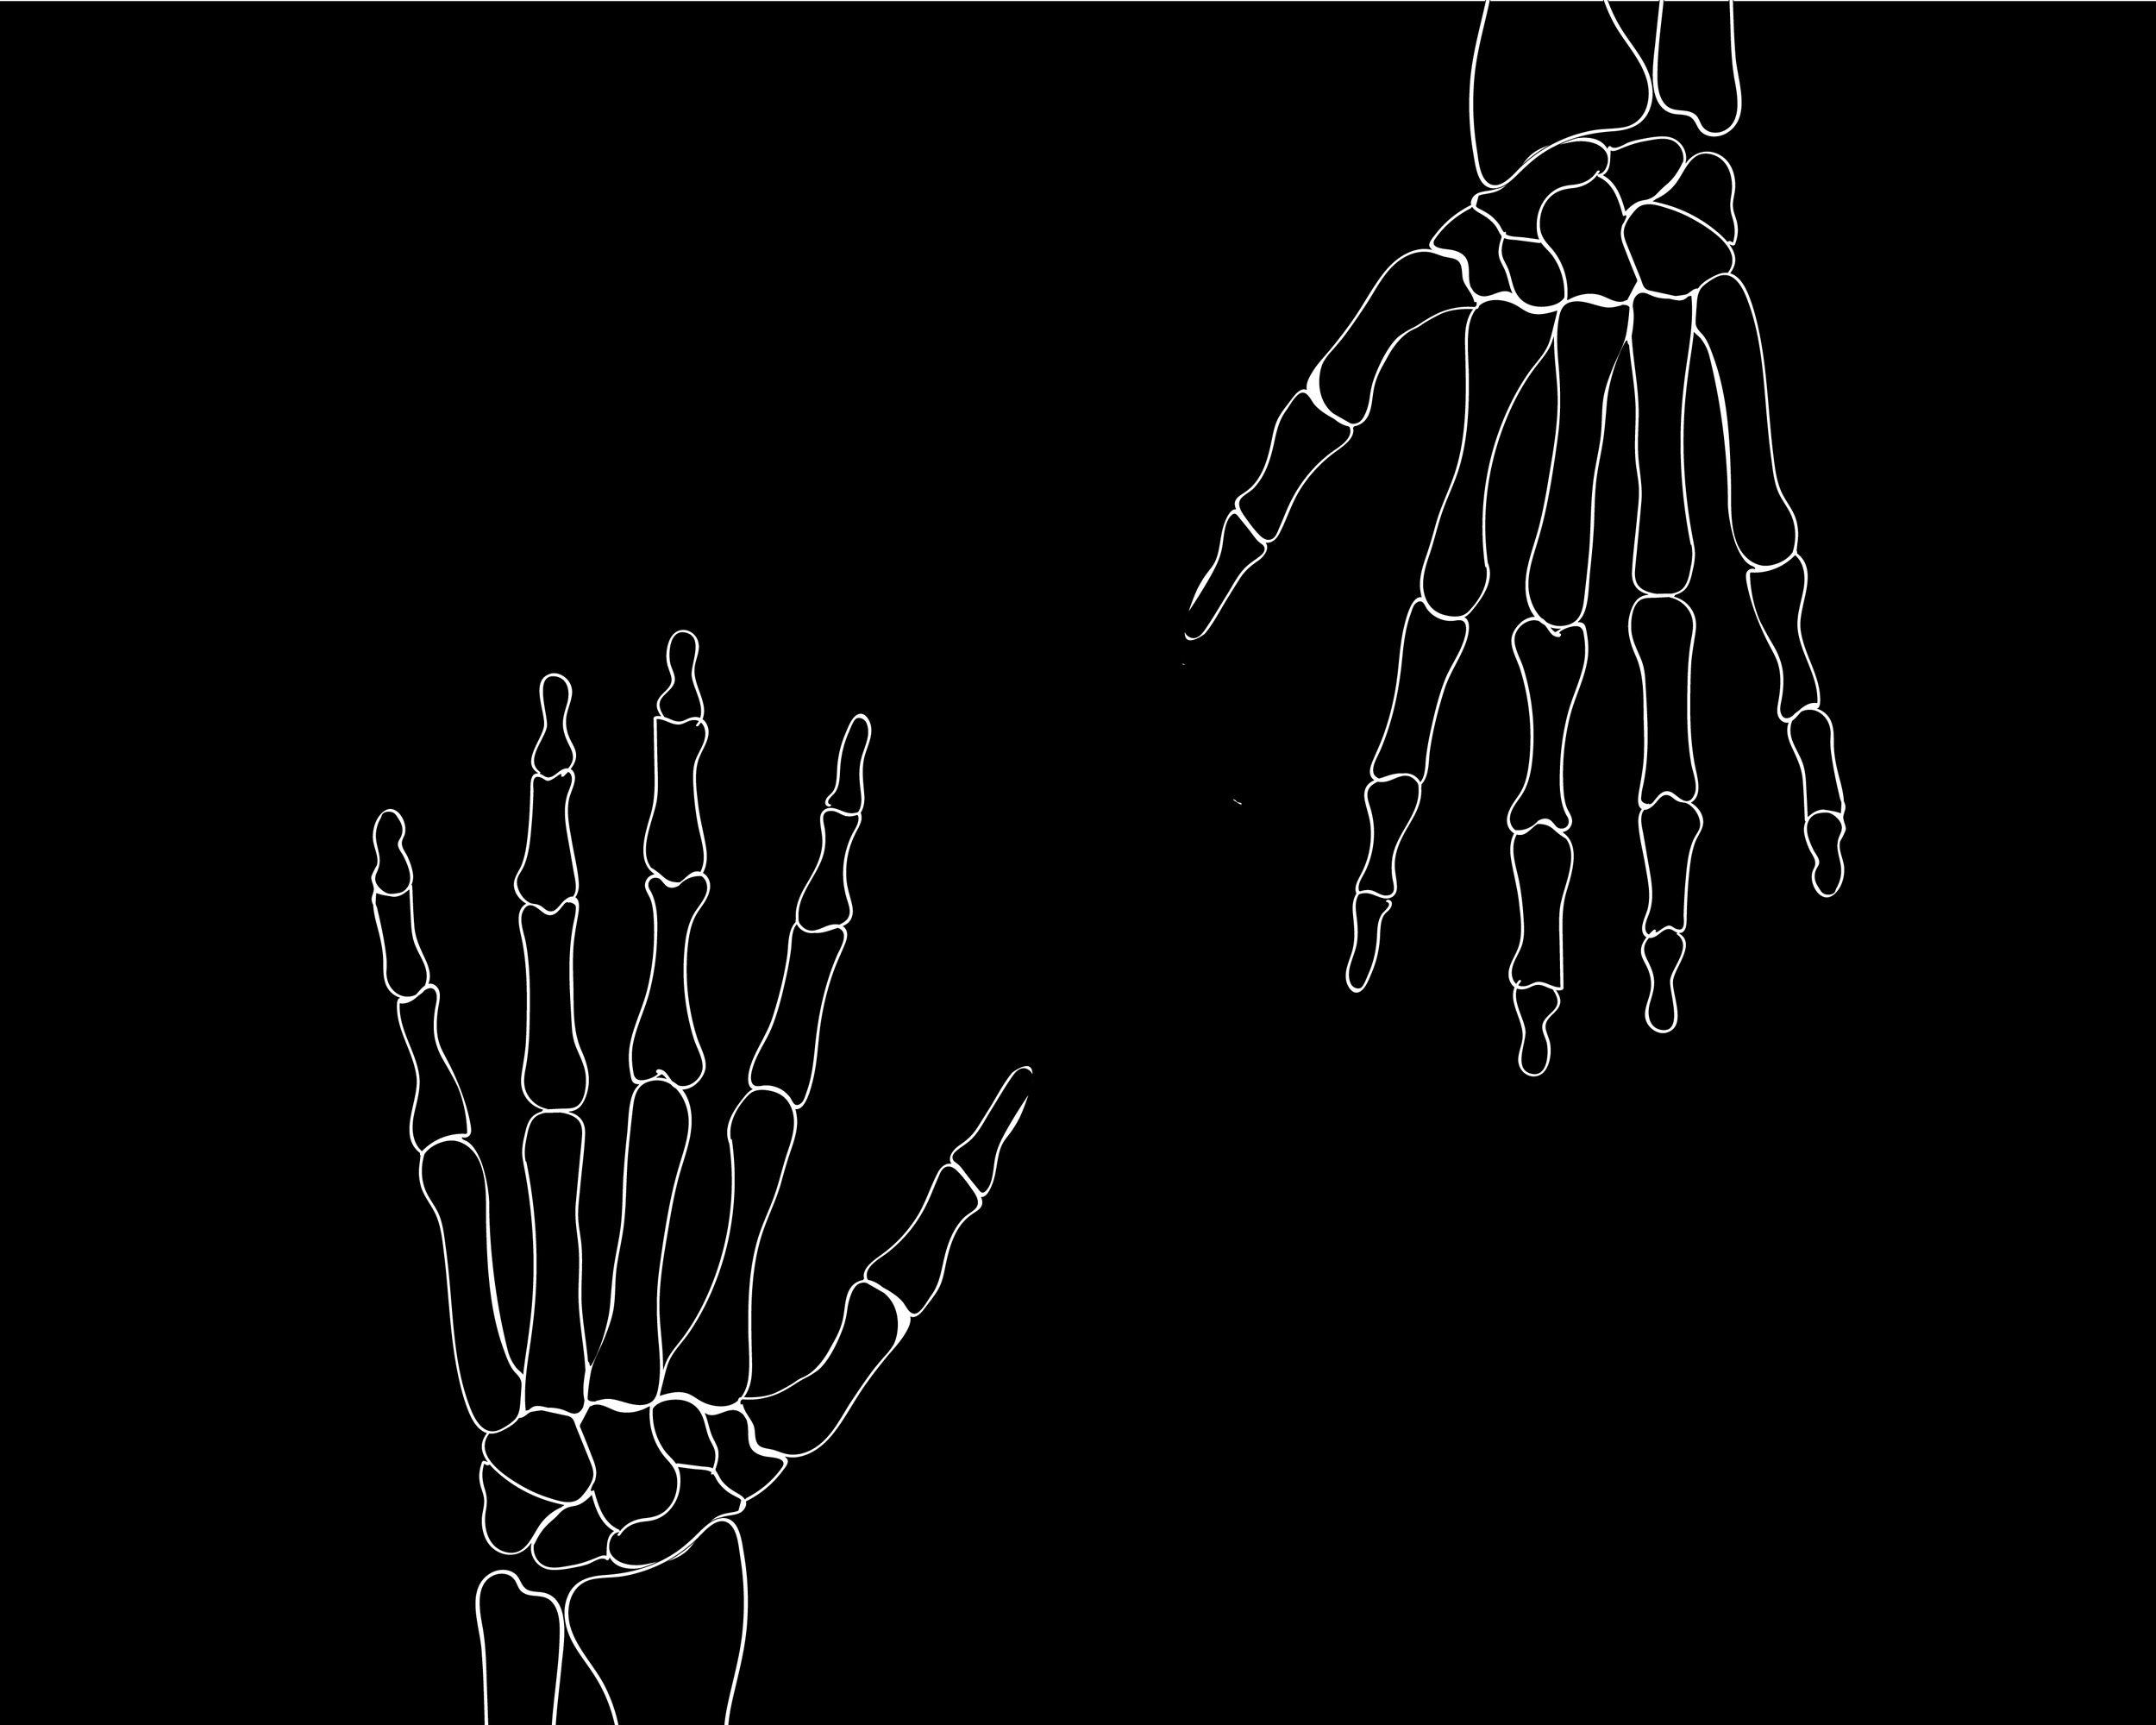 Hand_black-04.png